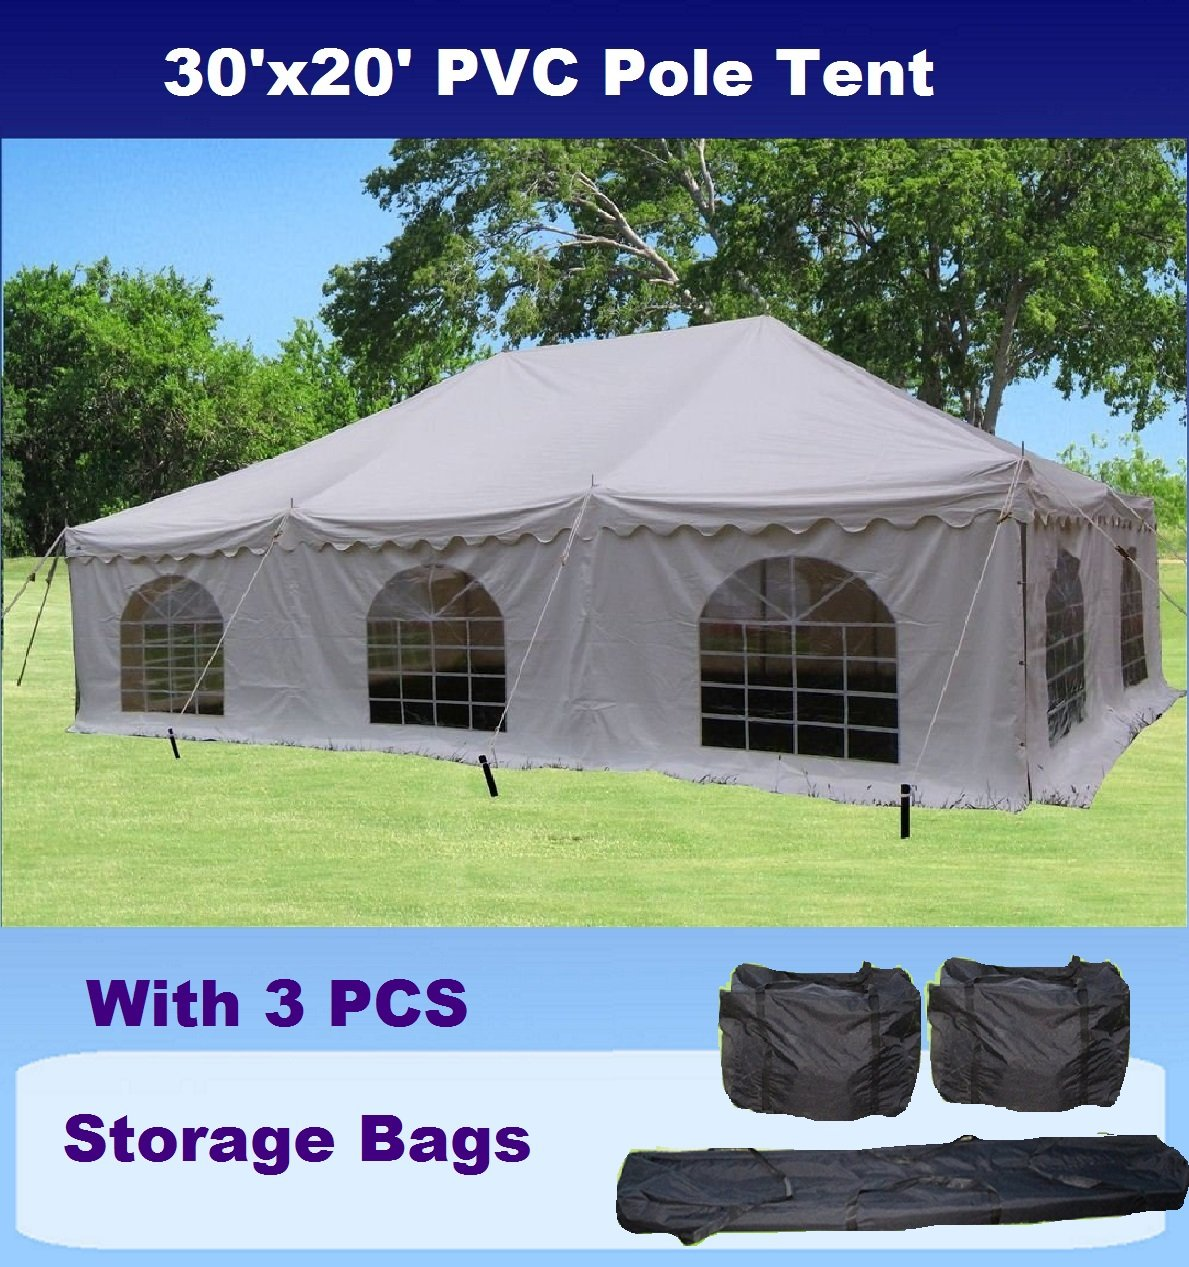 30'x20' PVC Pole Tent - Heavy Duty Wedding Party Canopy Shelter - with Storage Bags - By DELTA Canopies